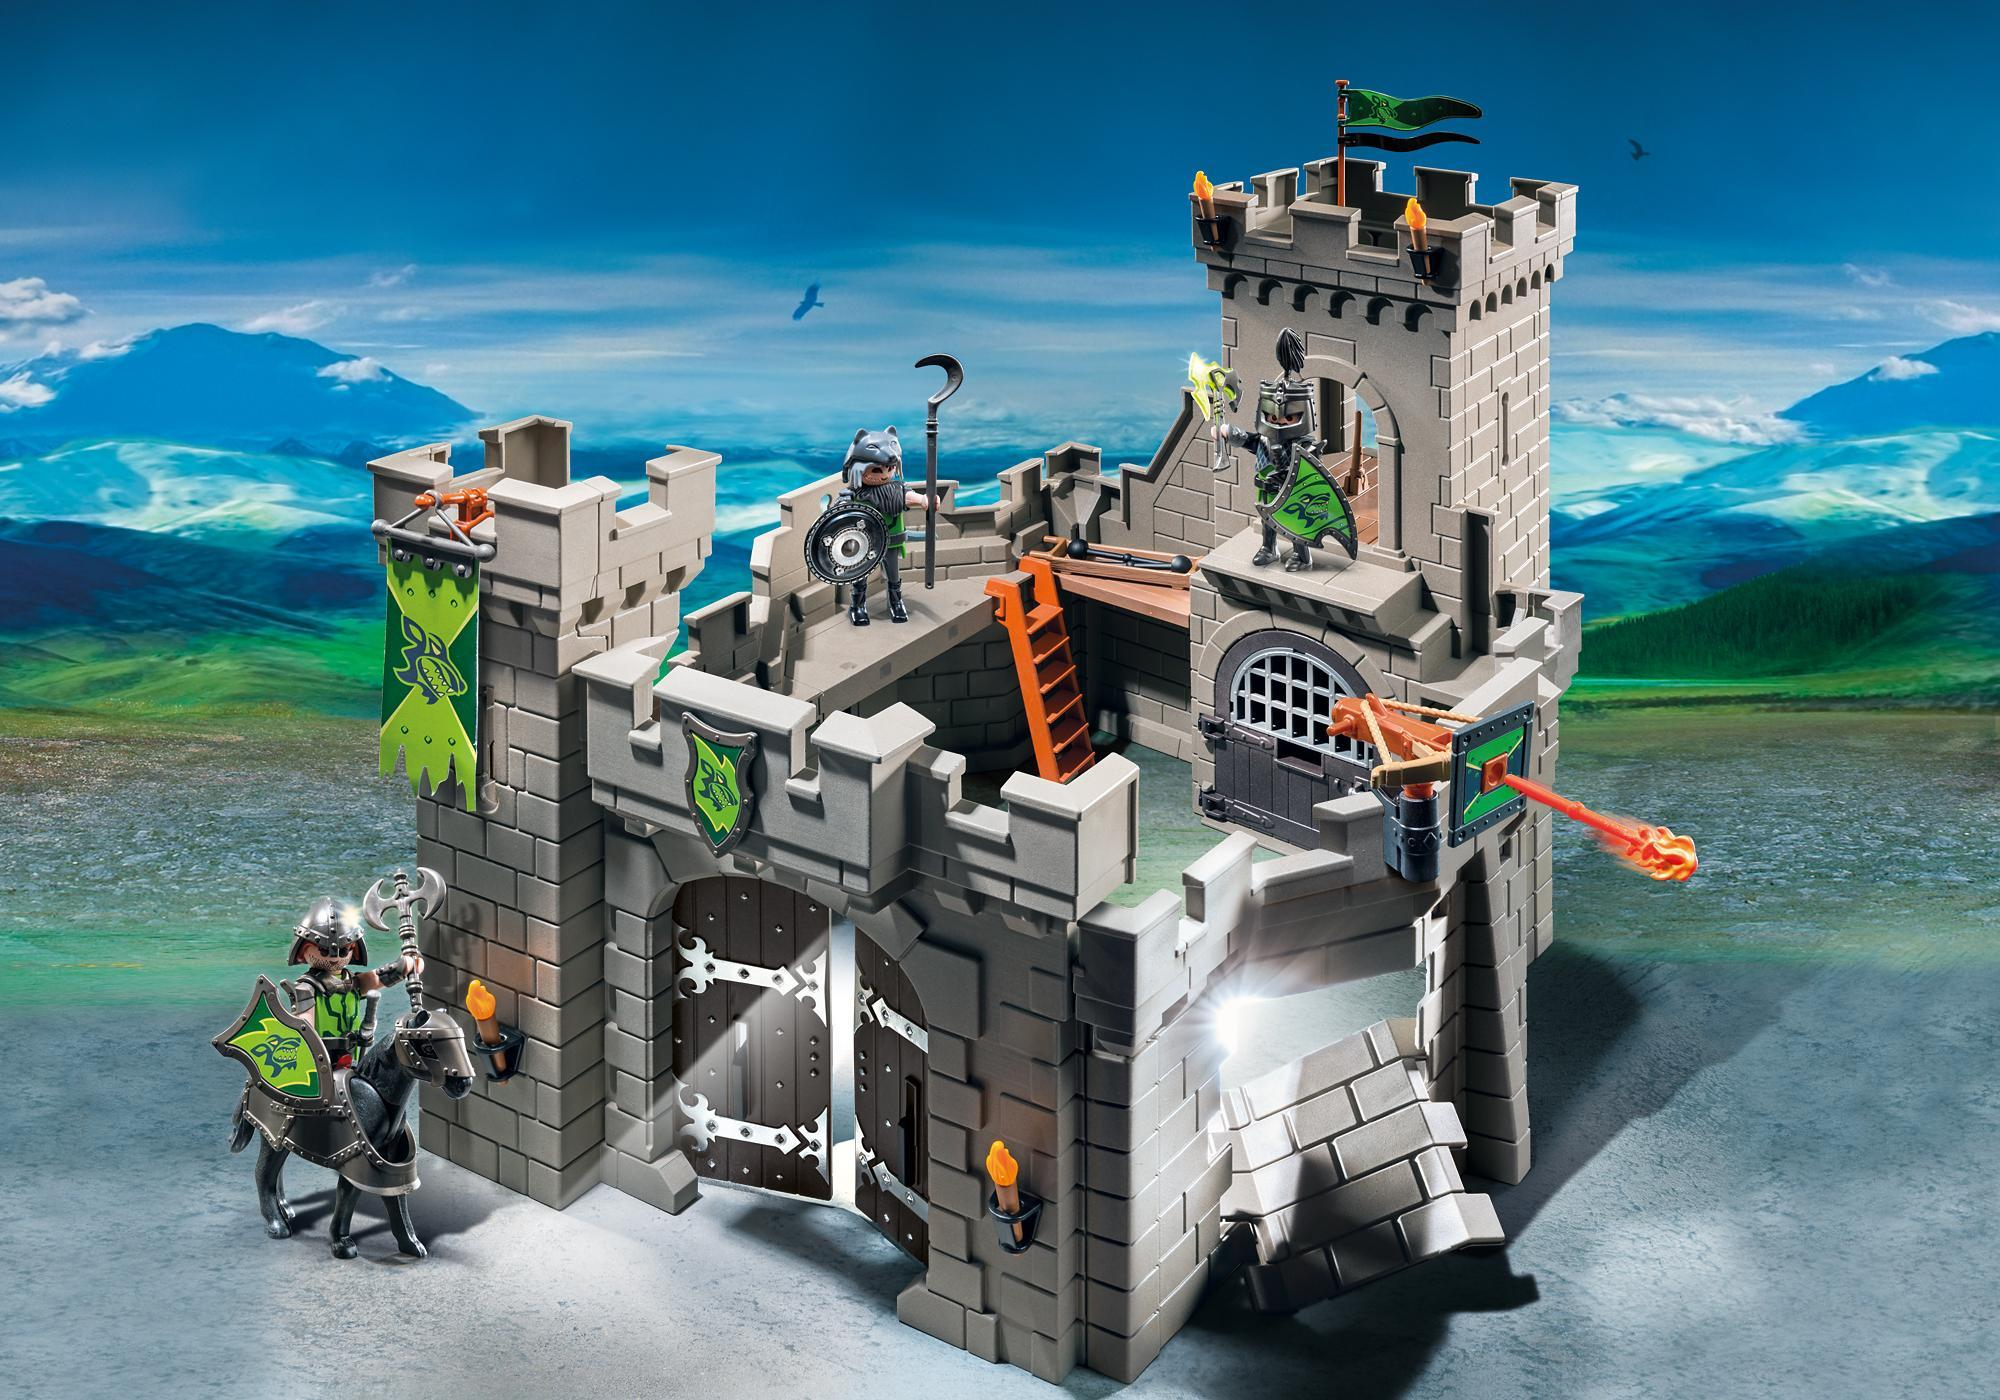 http://media.playmobil.com/i/playmobil/6002_product_detail/Wolf Knights` Castle